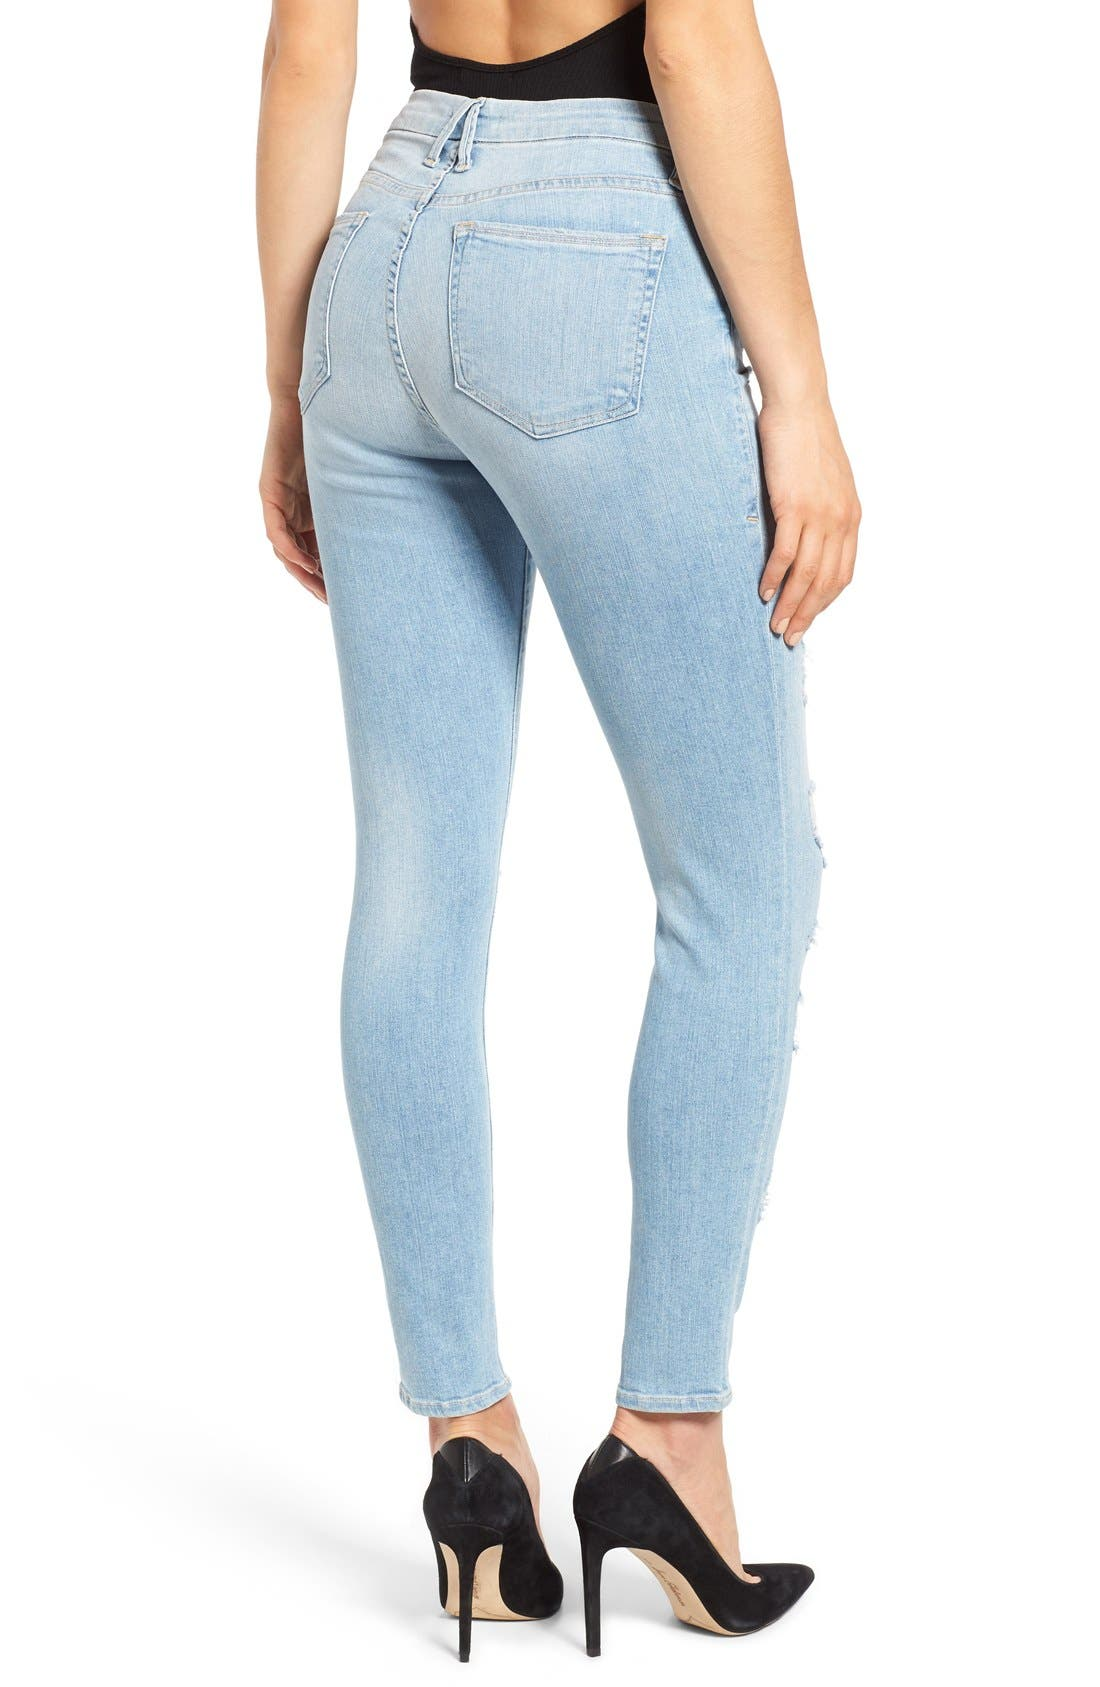 Good Legs High Rise Ripped Skinny Jeans,                             Alternate thumbnail 2, color,                             Blue 008